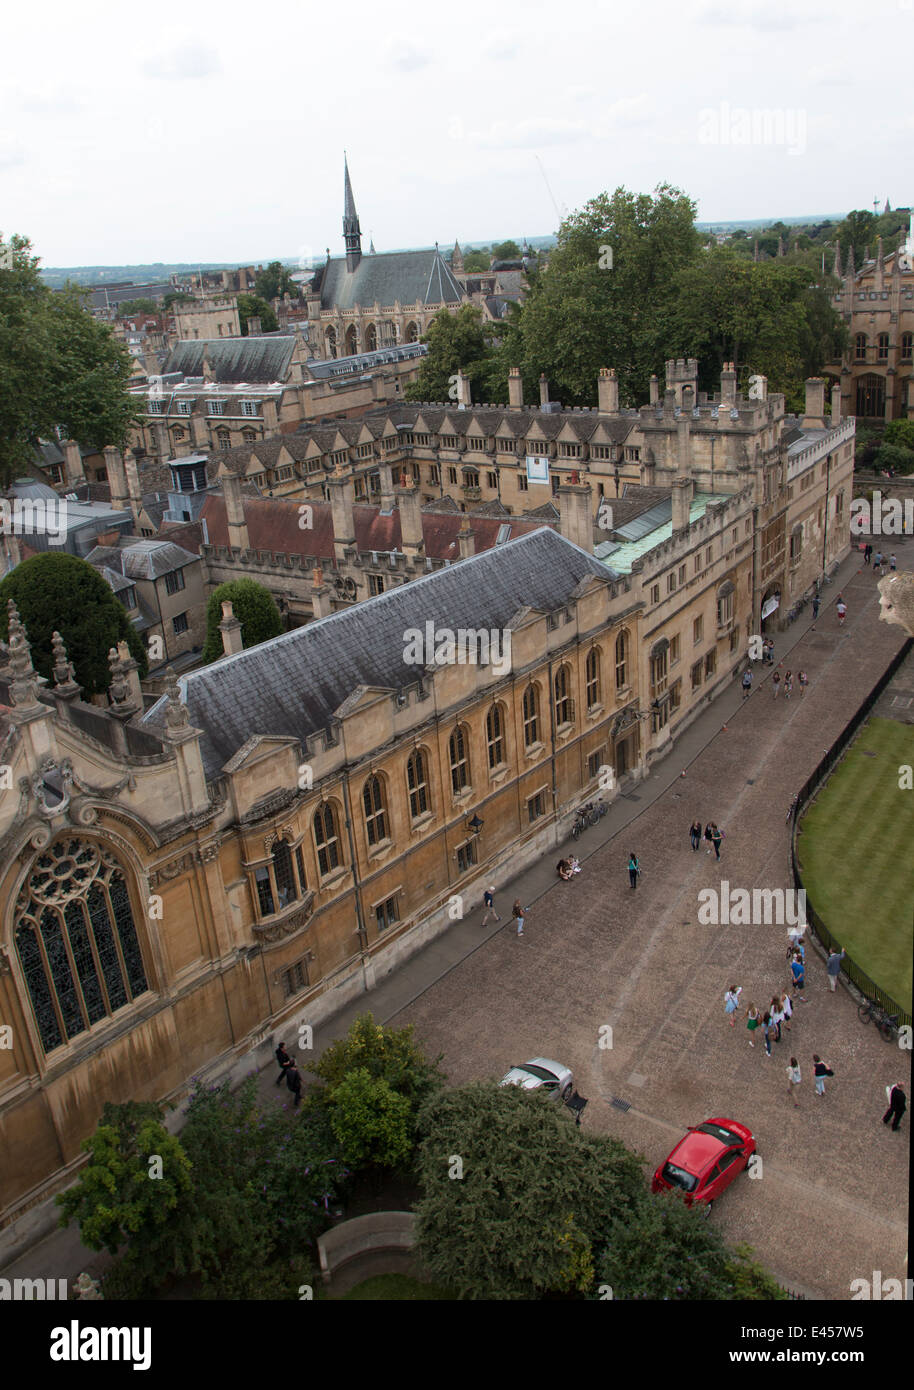 Oxford University Radcliffe Square Brasenose College - Stock Image